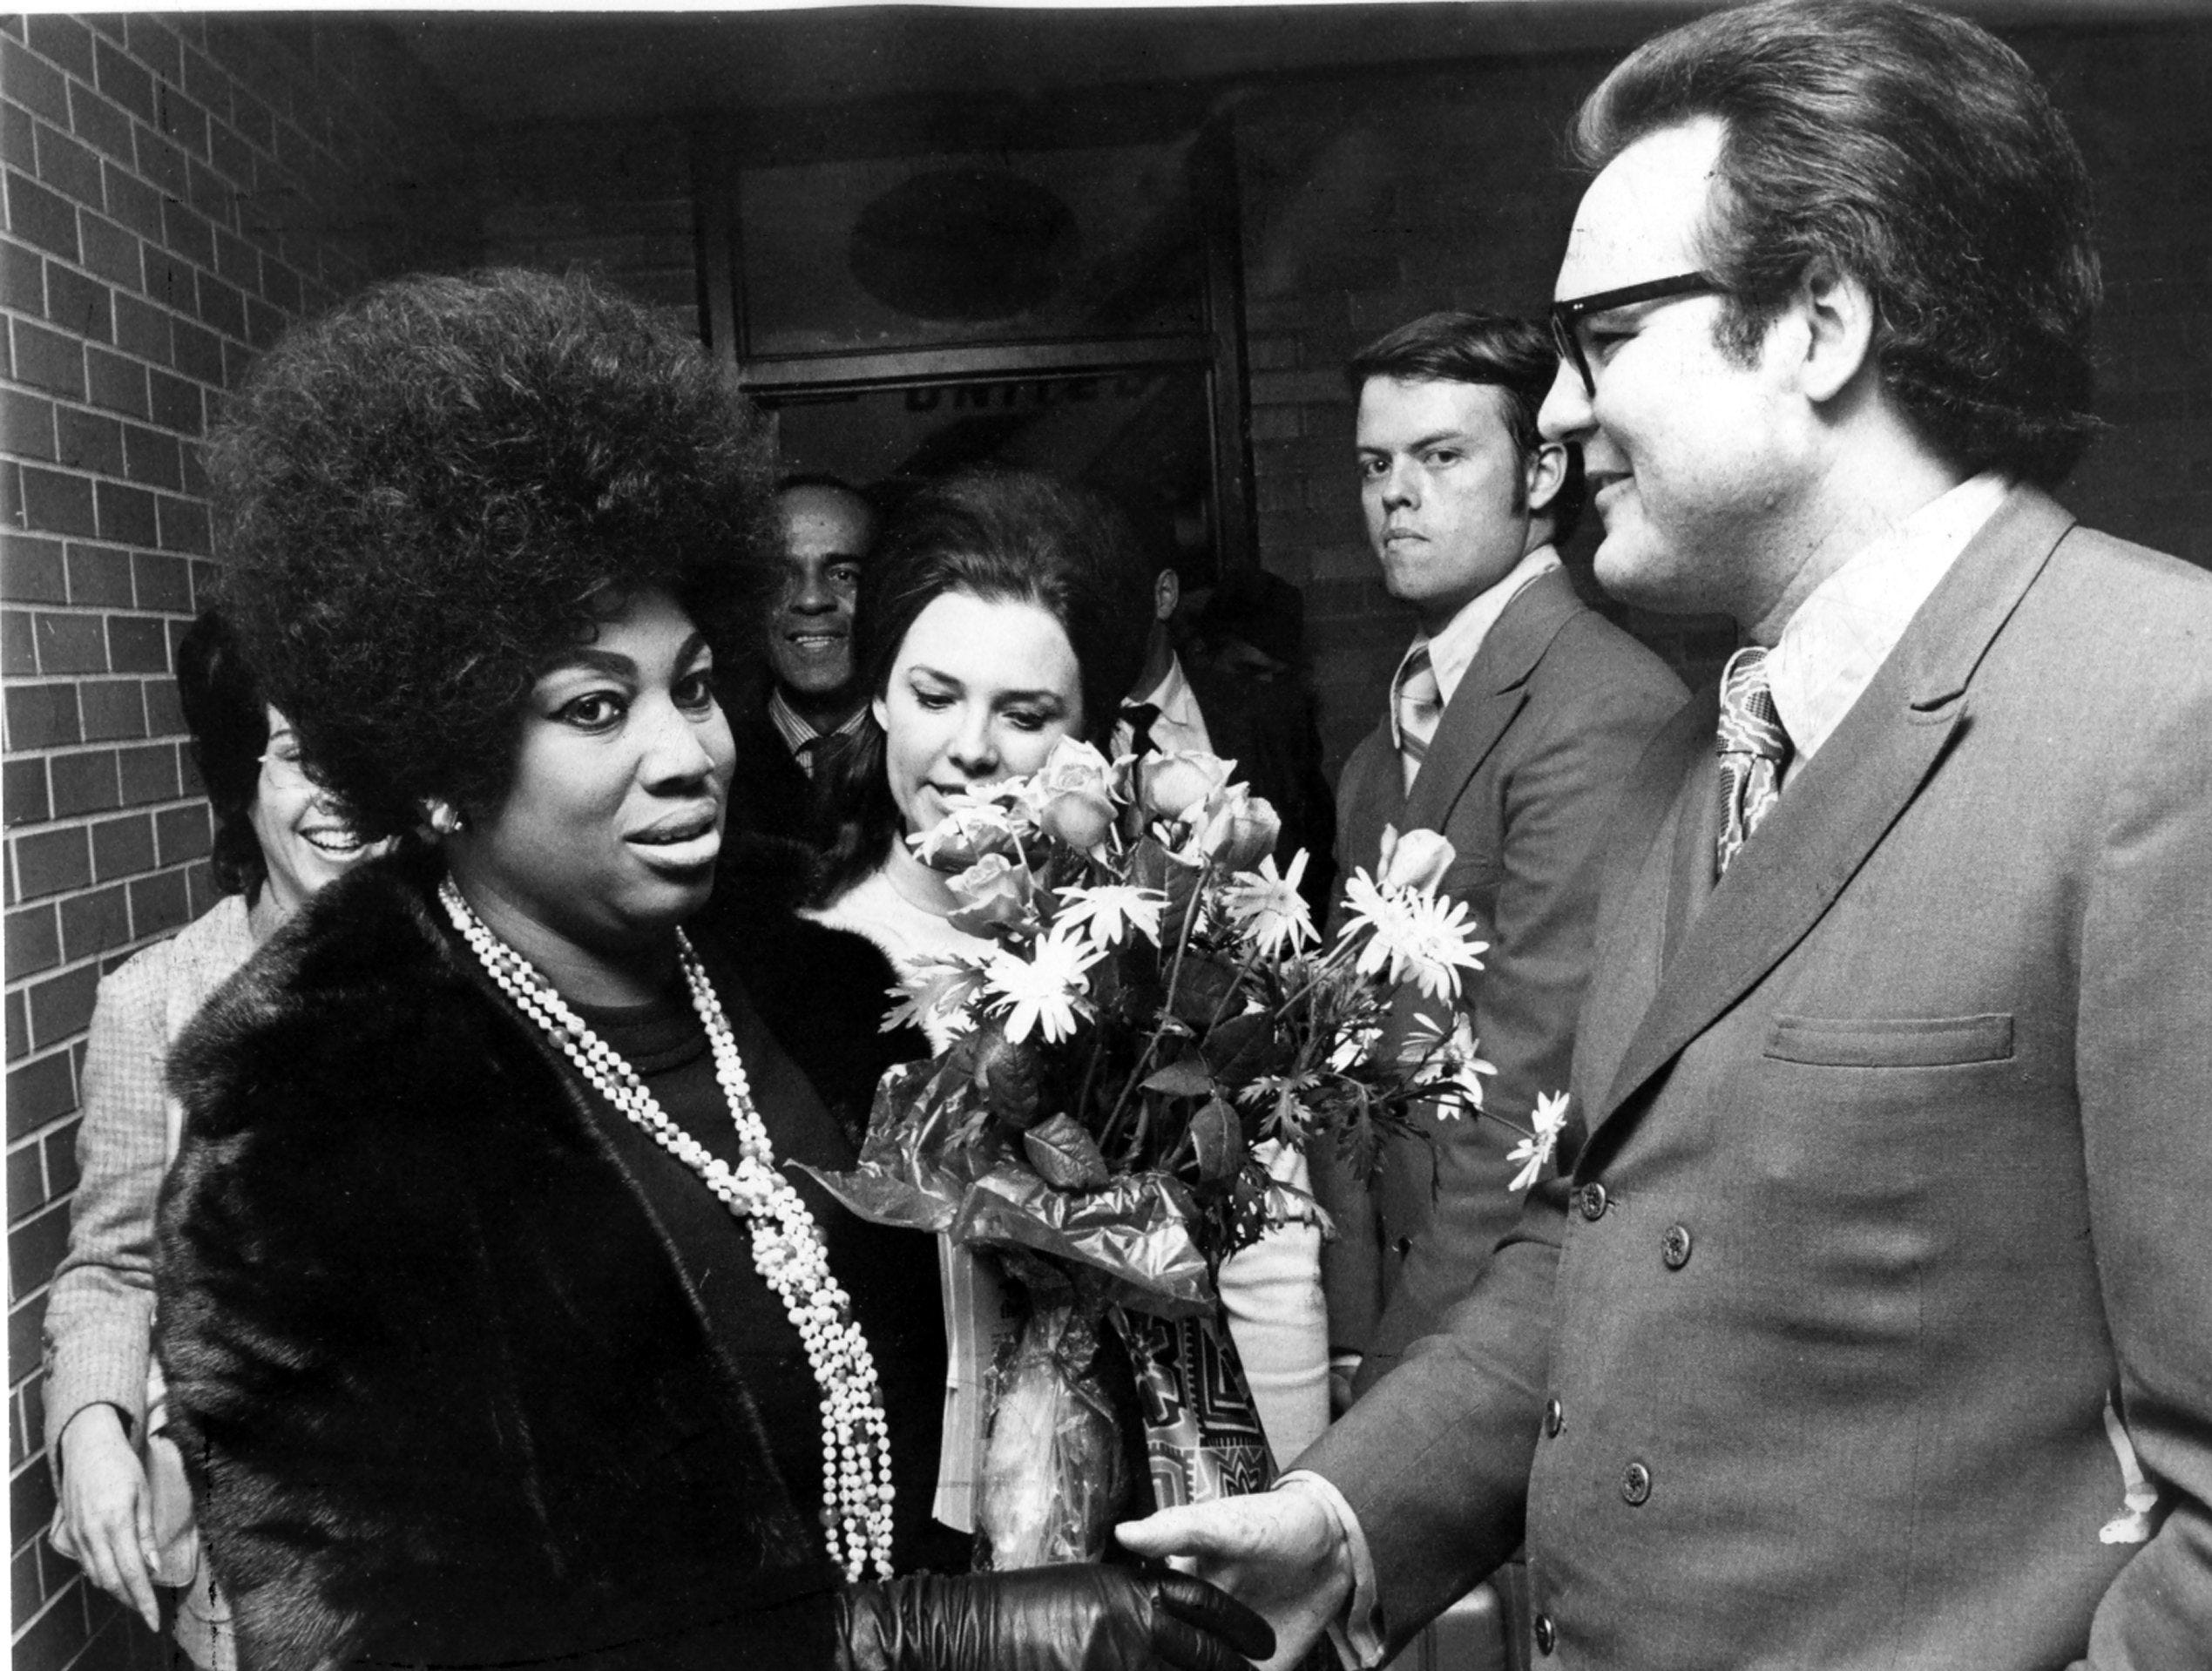 Metropolitan Opera star Leontyne Price is greeted by Mr. & Mrs. George Osborne upon her arrival at Memphis International Airport on 13 Jan 1971. Miss Price's performance at the Auditorium Music Hall is co-sponsored by Arts Appreciation and Memphis State University Opera Theater.